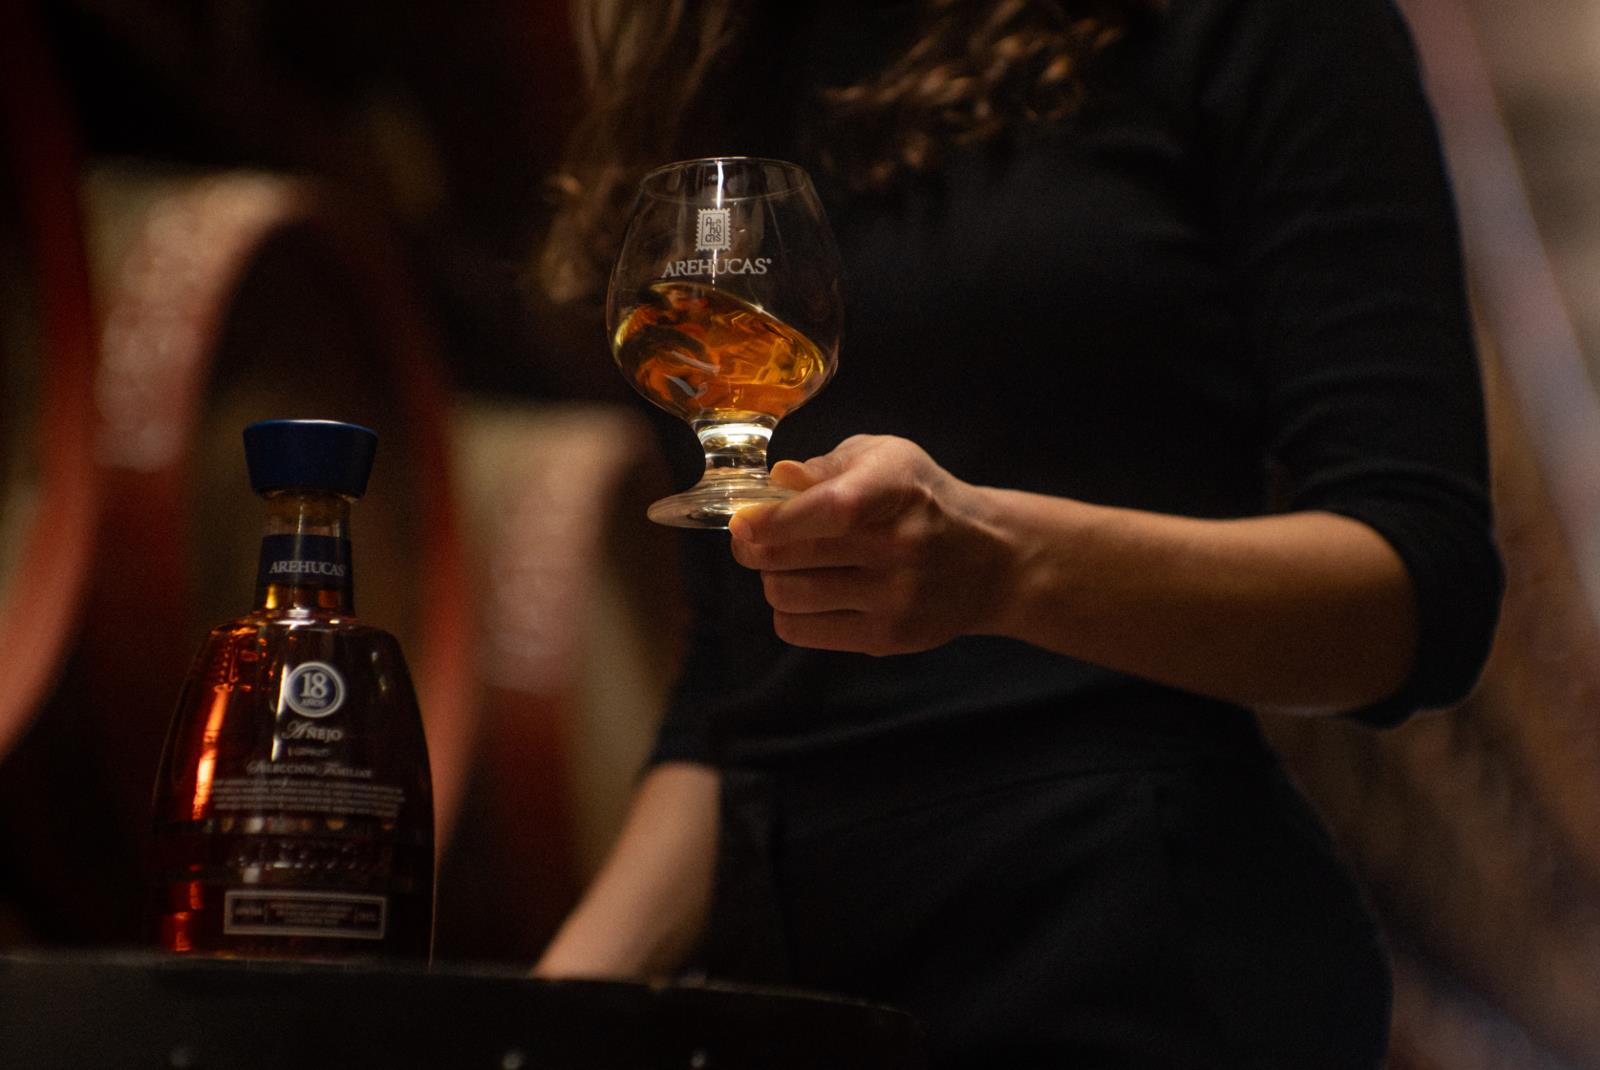 Guided-Tour-at-Ron-Arehucas-Distillery-7